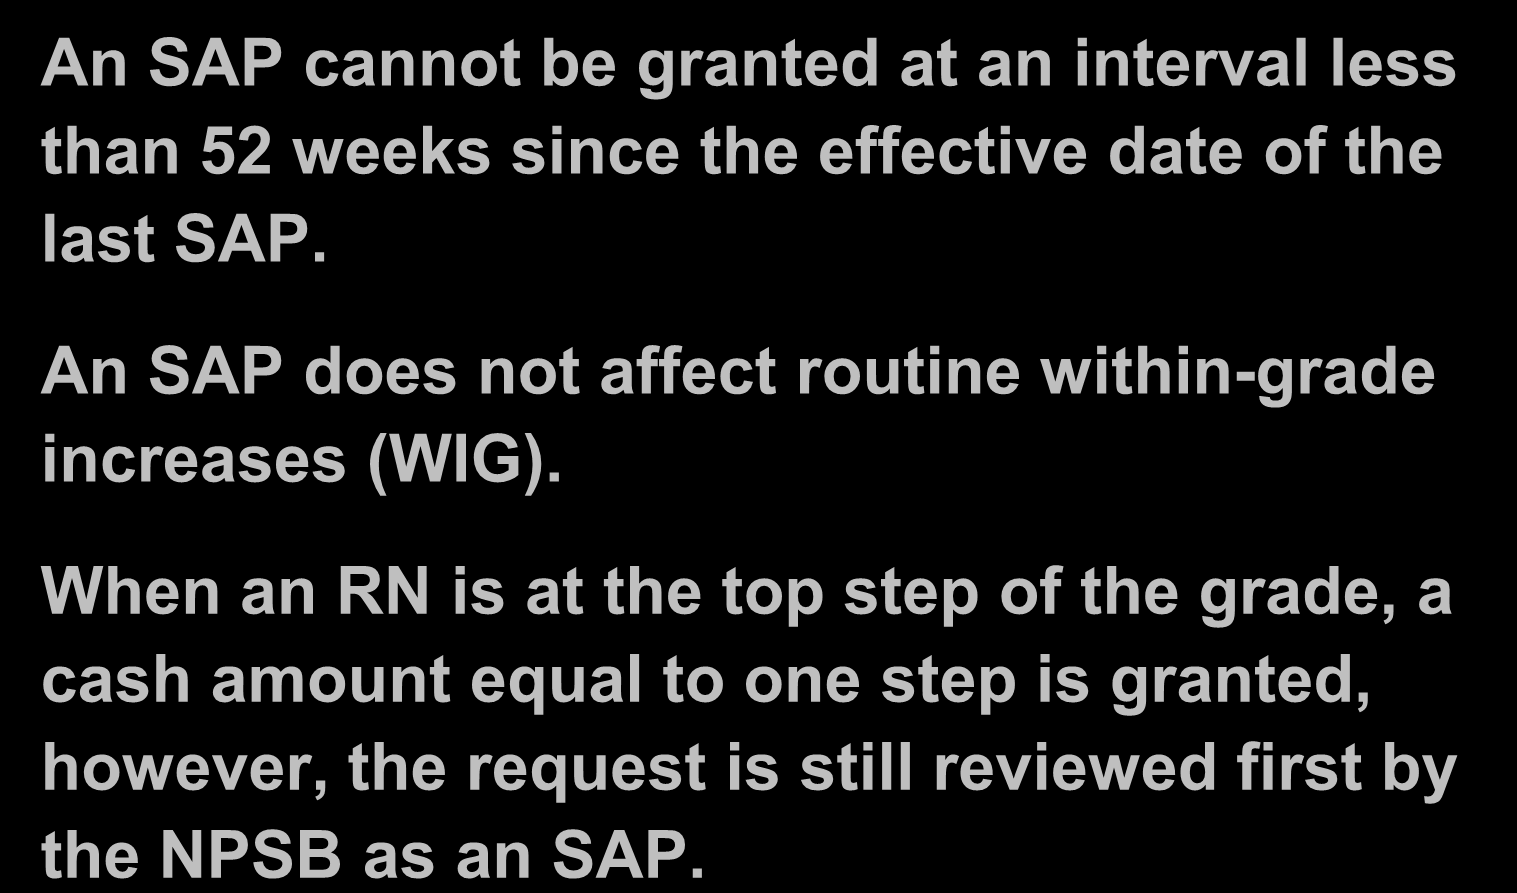 Special Advancement for Performance (SAP) (Cont.) An SAP cannot be granted at an interval less than 52 weeks since the effective date of the last SAP.